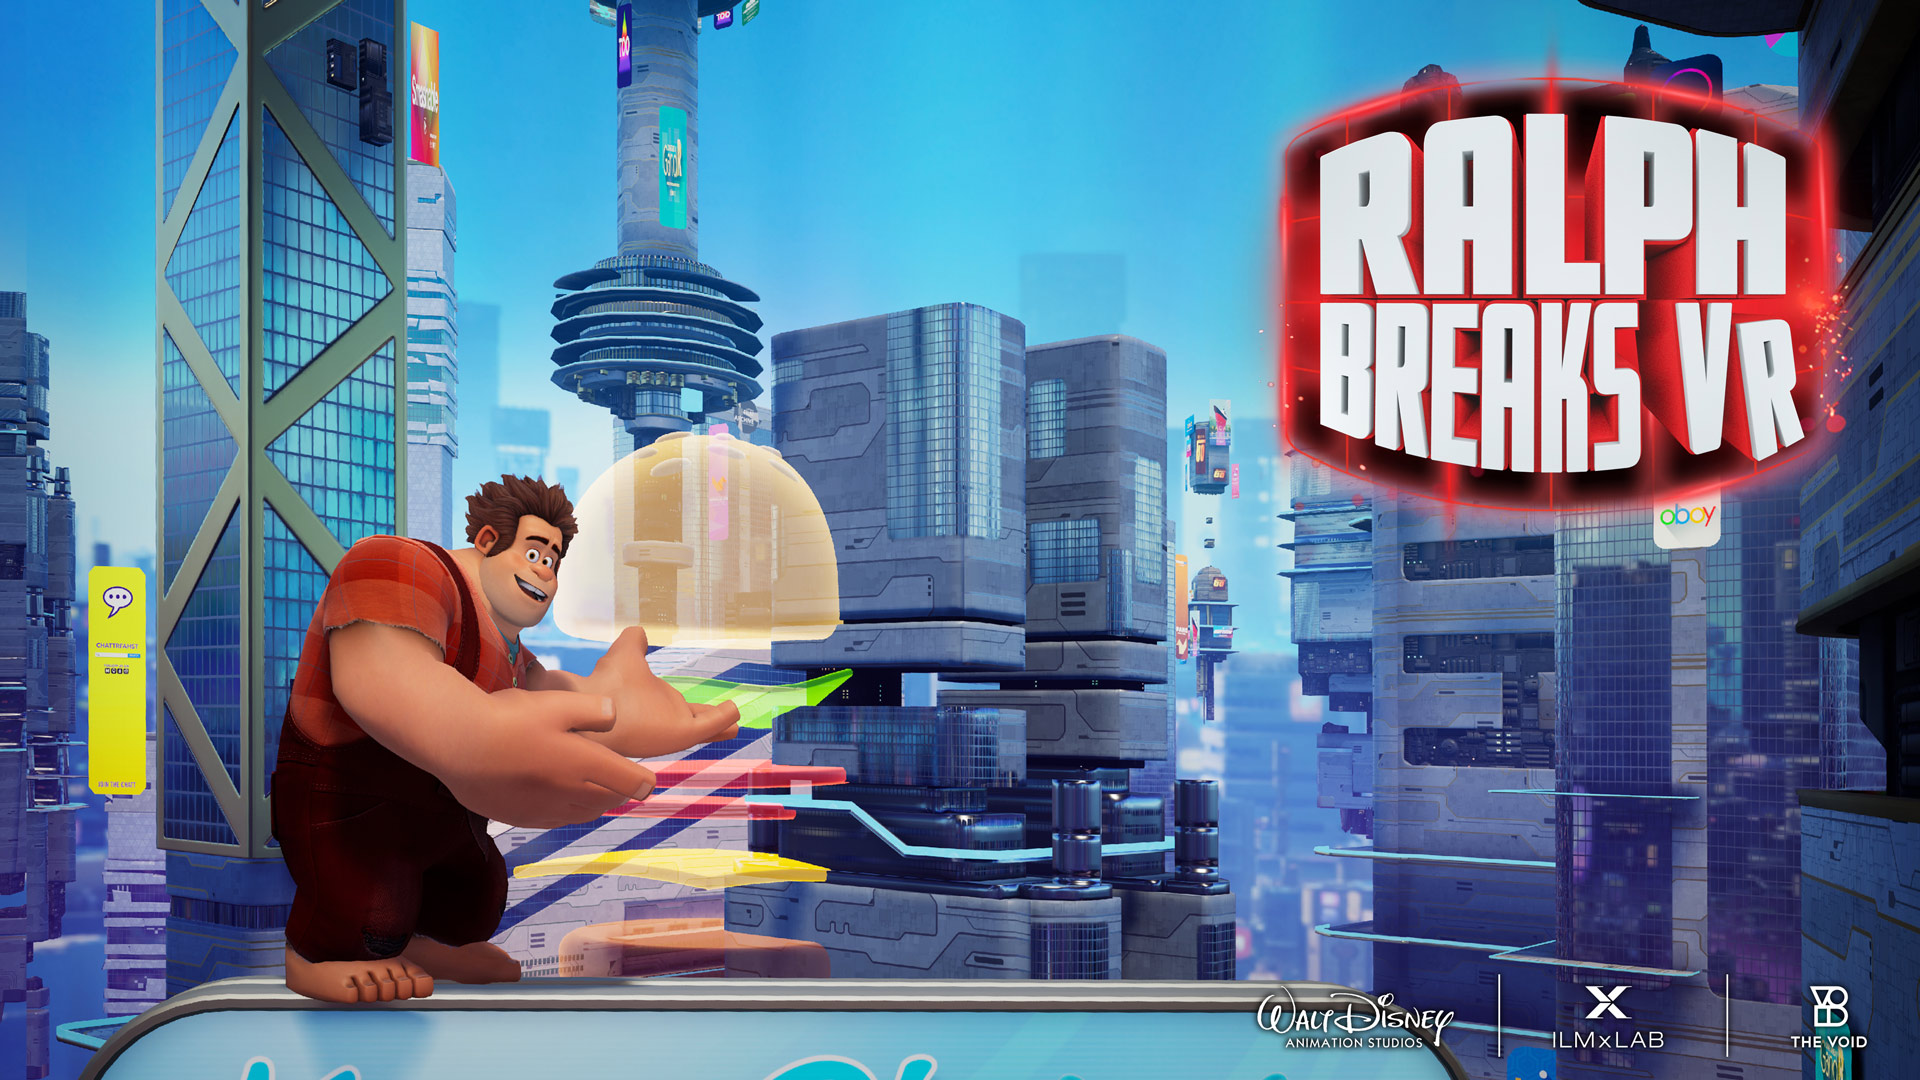 Ralph-Breaks-VR-The-Void